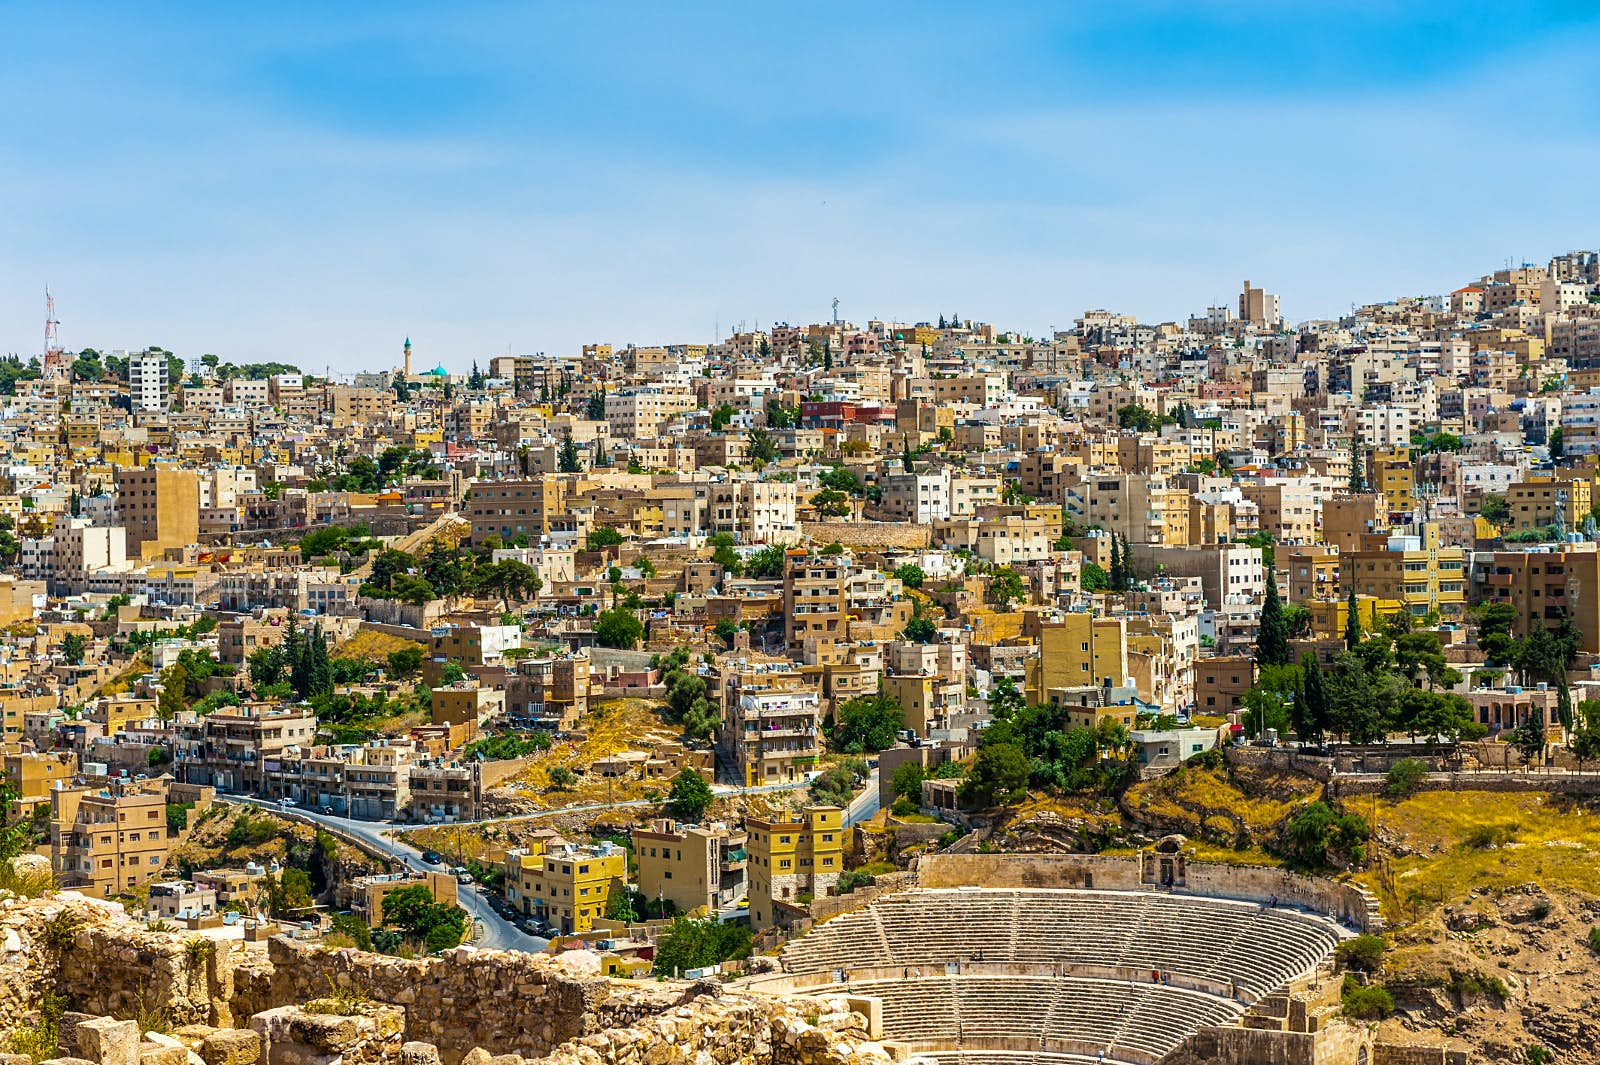 In front of the city that seems perched on a hillside is the Roman Theatre, with its semi-circular seats arching around its centre stage; Free things to do in Amman, Jordan